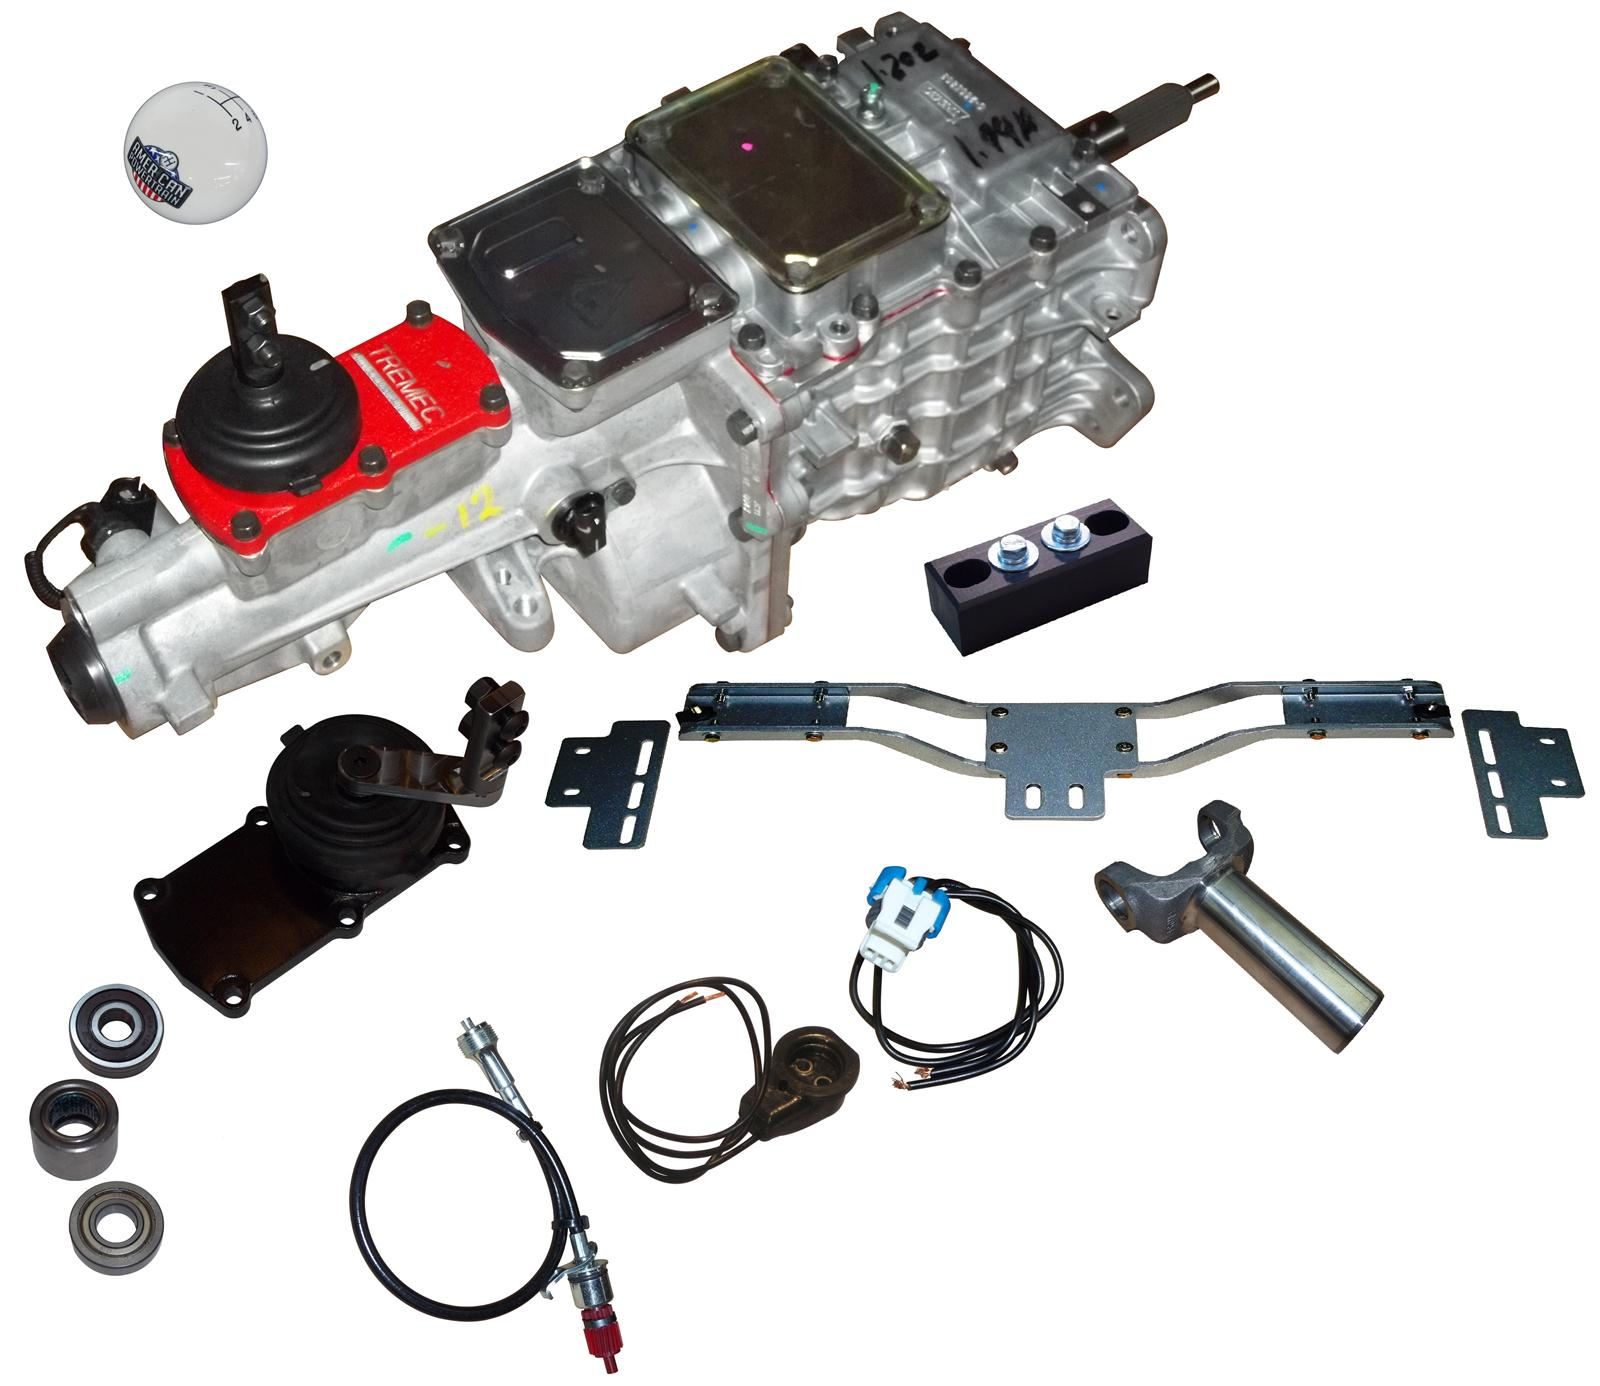 Camaro American Powertrain Tremec Tko 500 Manual Transmission And System Installation Kits Cogm F2b Free Shipping On Orders Over 99 At Summit Racing